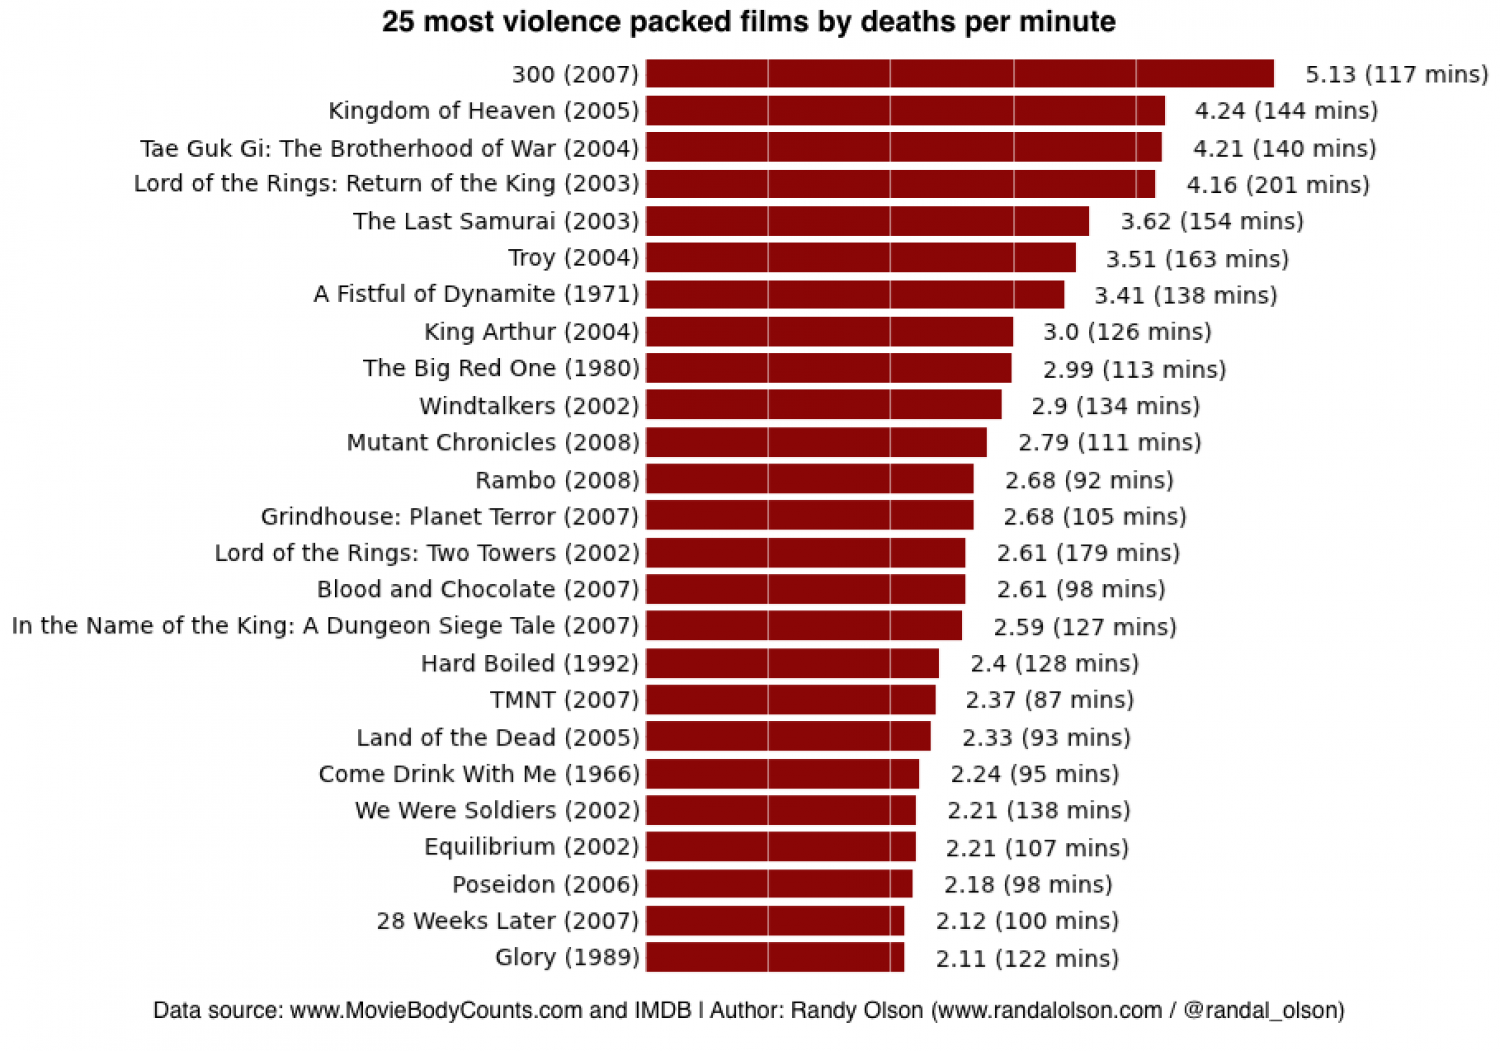 Top 25 most violence packed films of all time Infographic